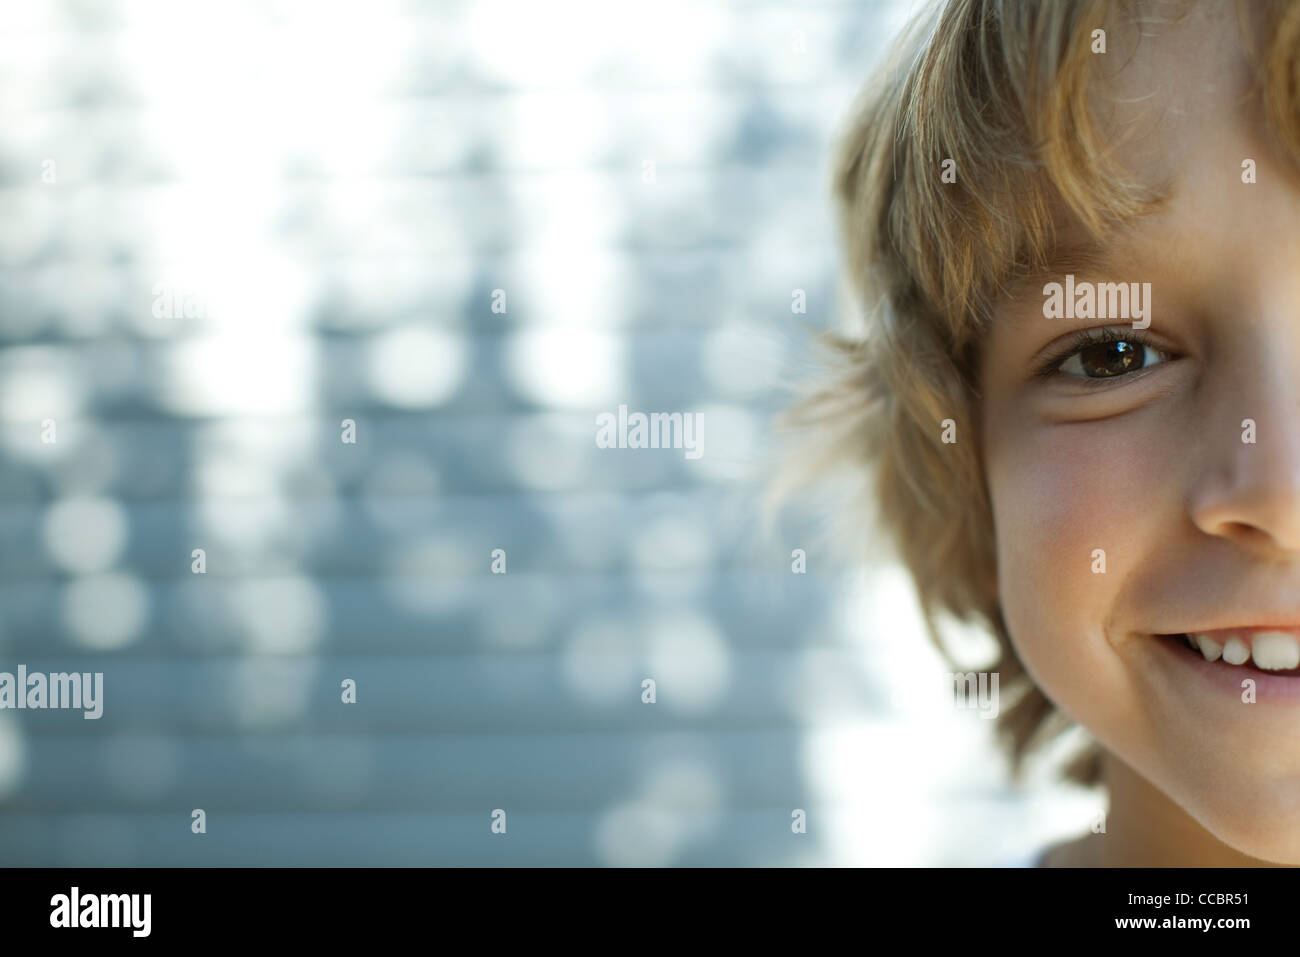 Boy smiling at camera, cropped portrait - Stock Image